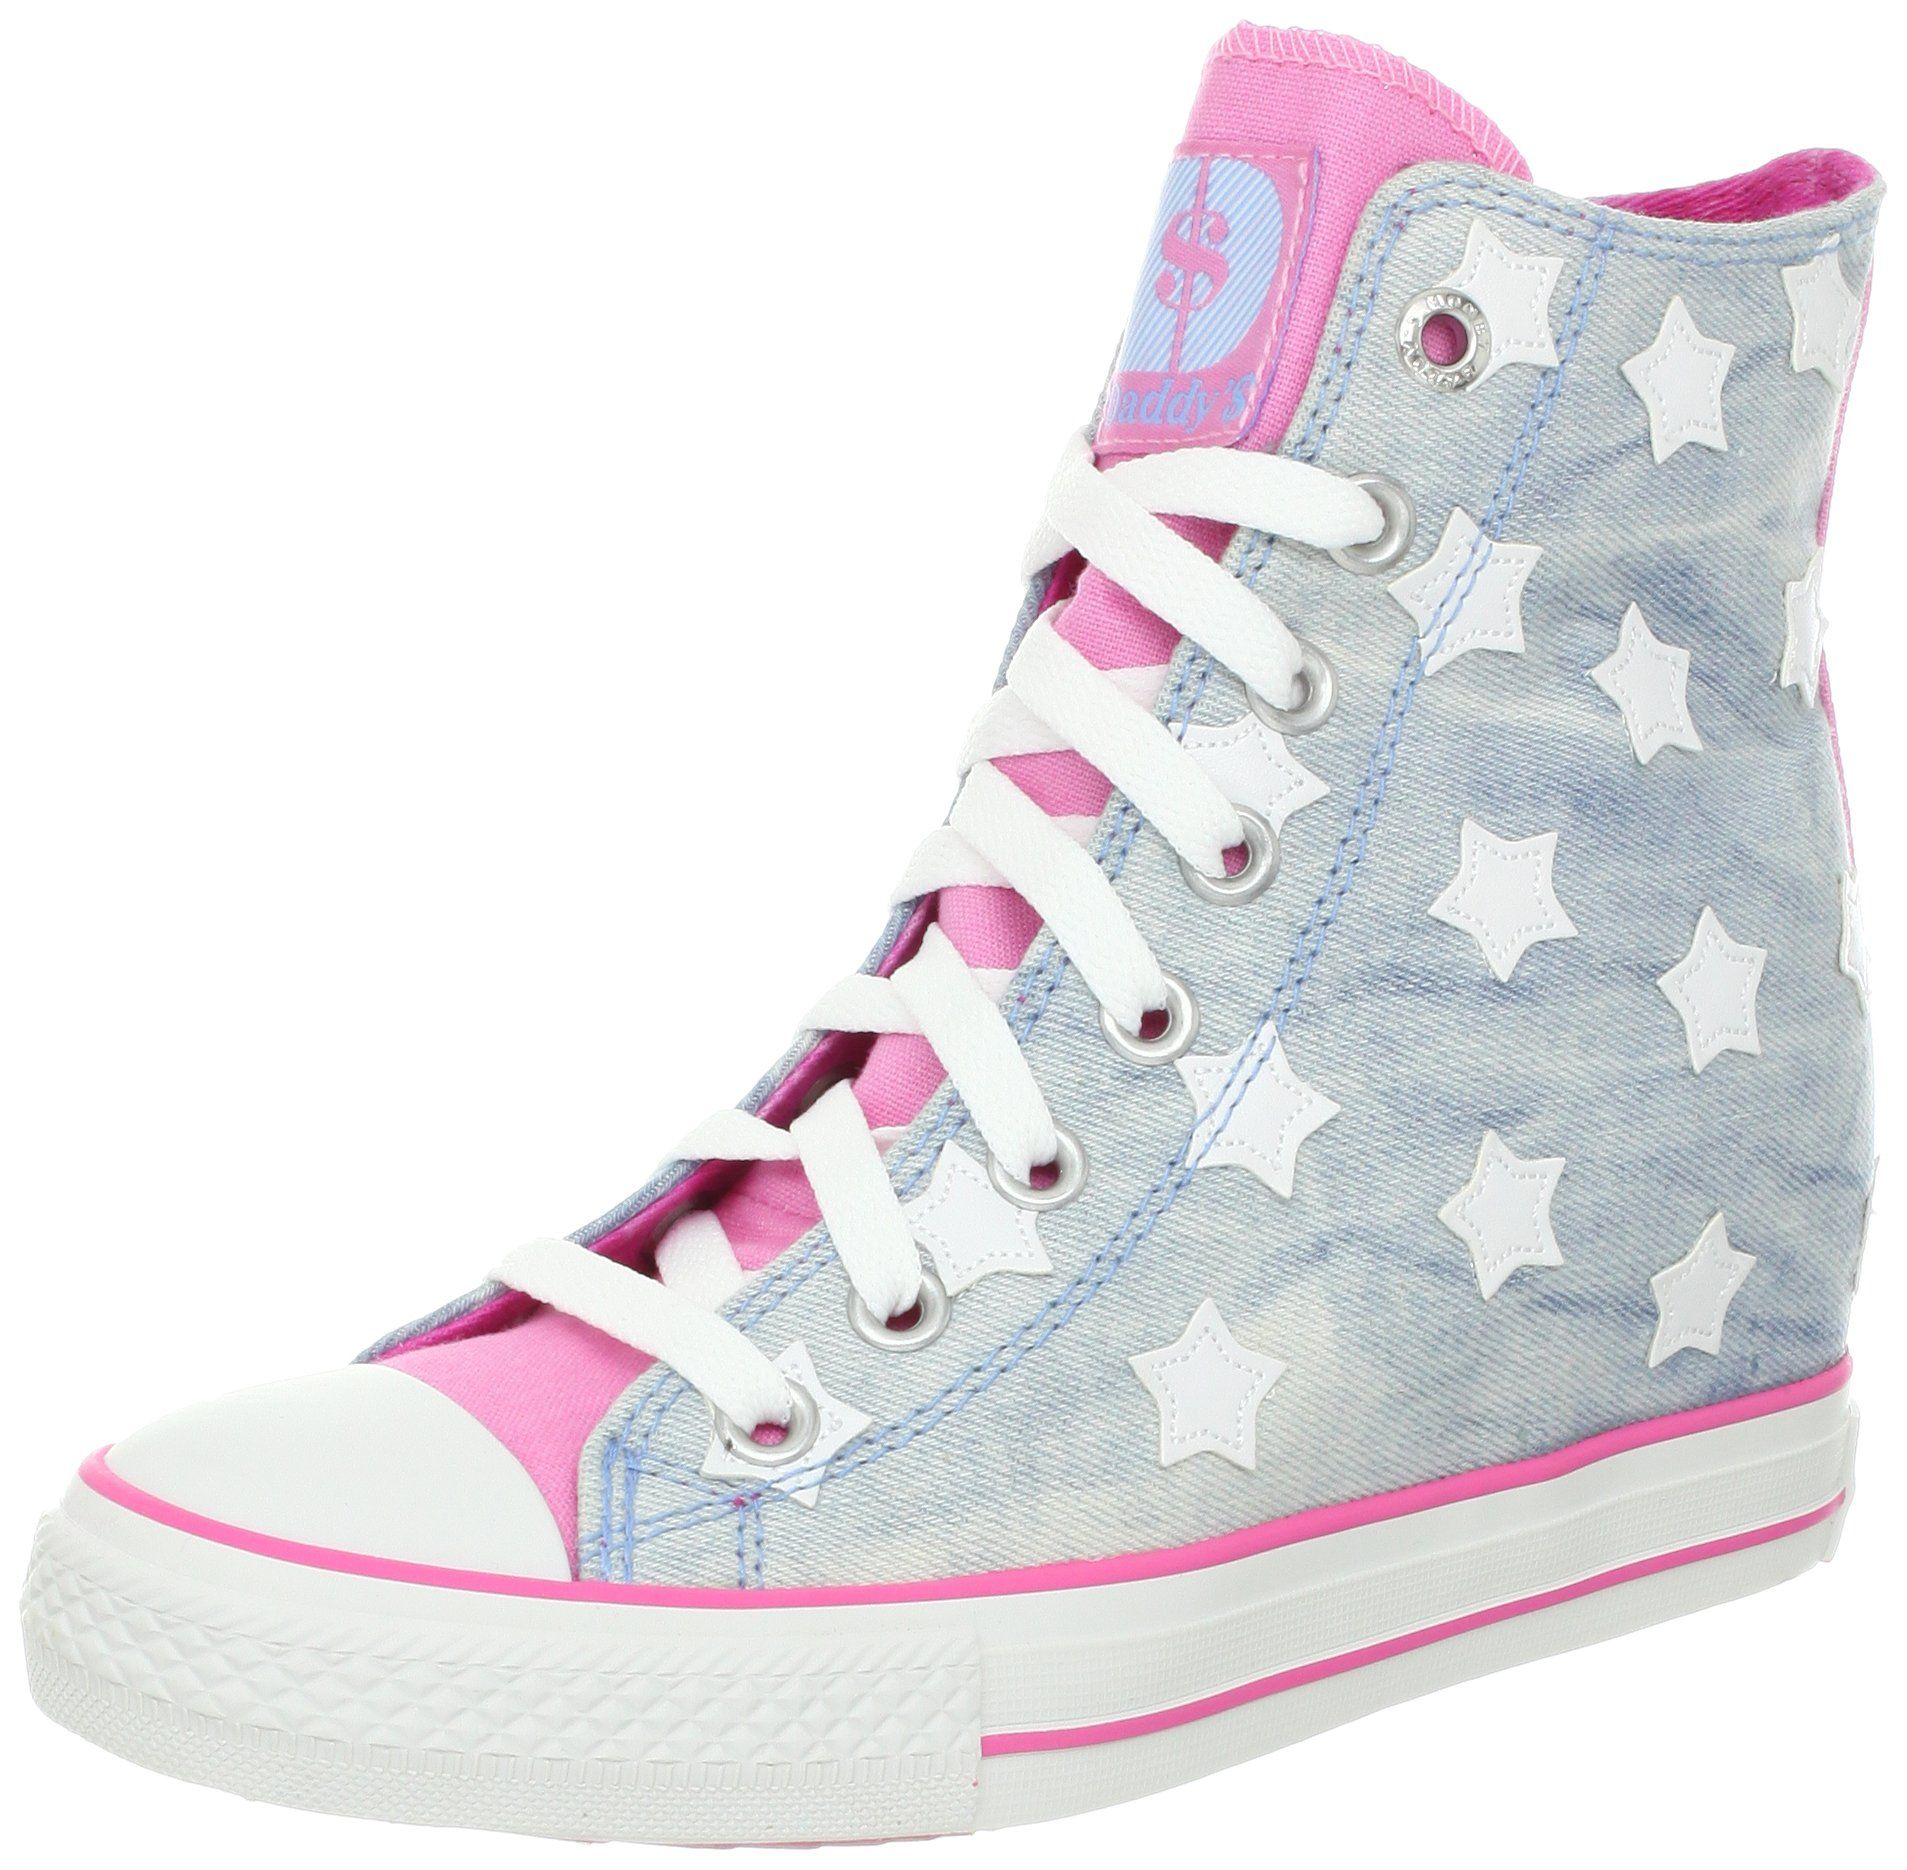 Skechers Gimme Starry Skies 39102 Damen Sneaker